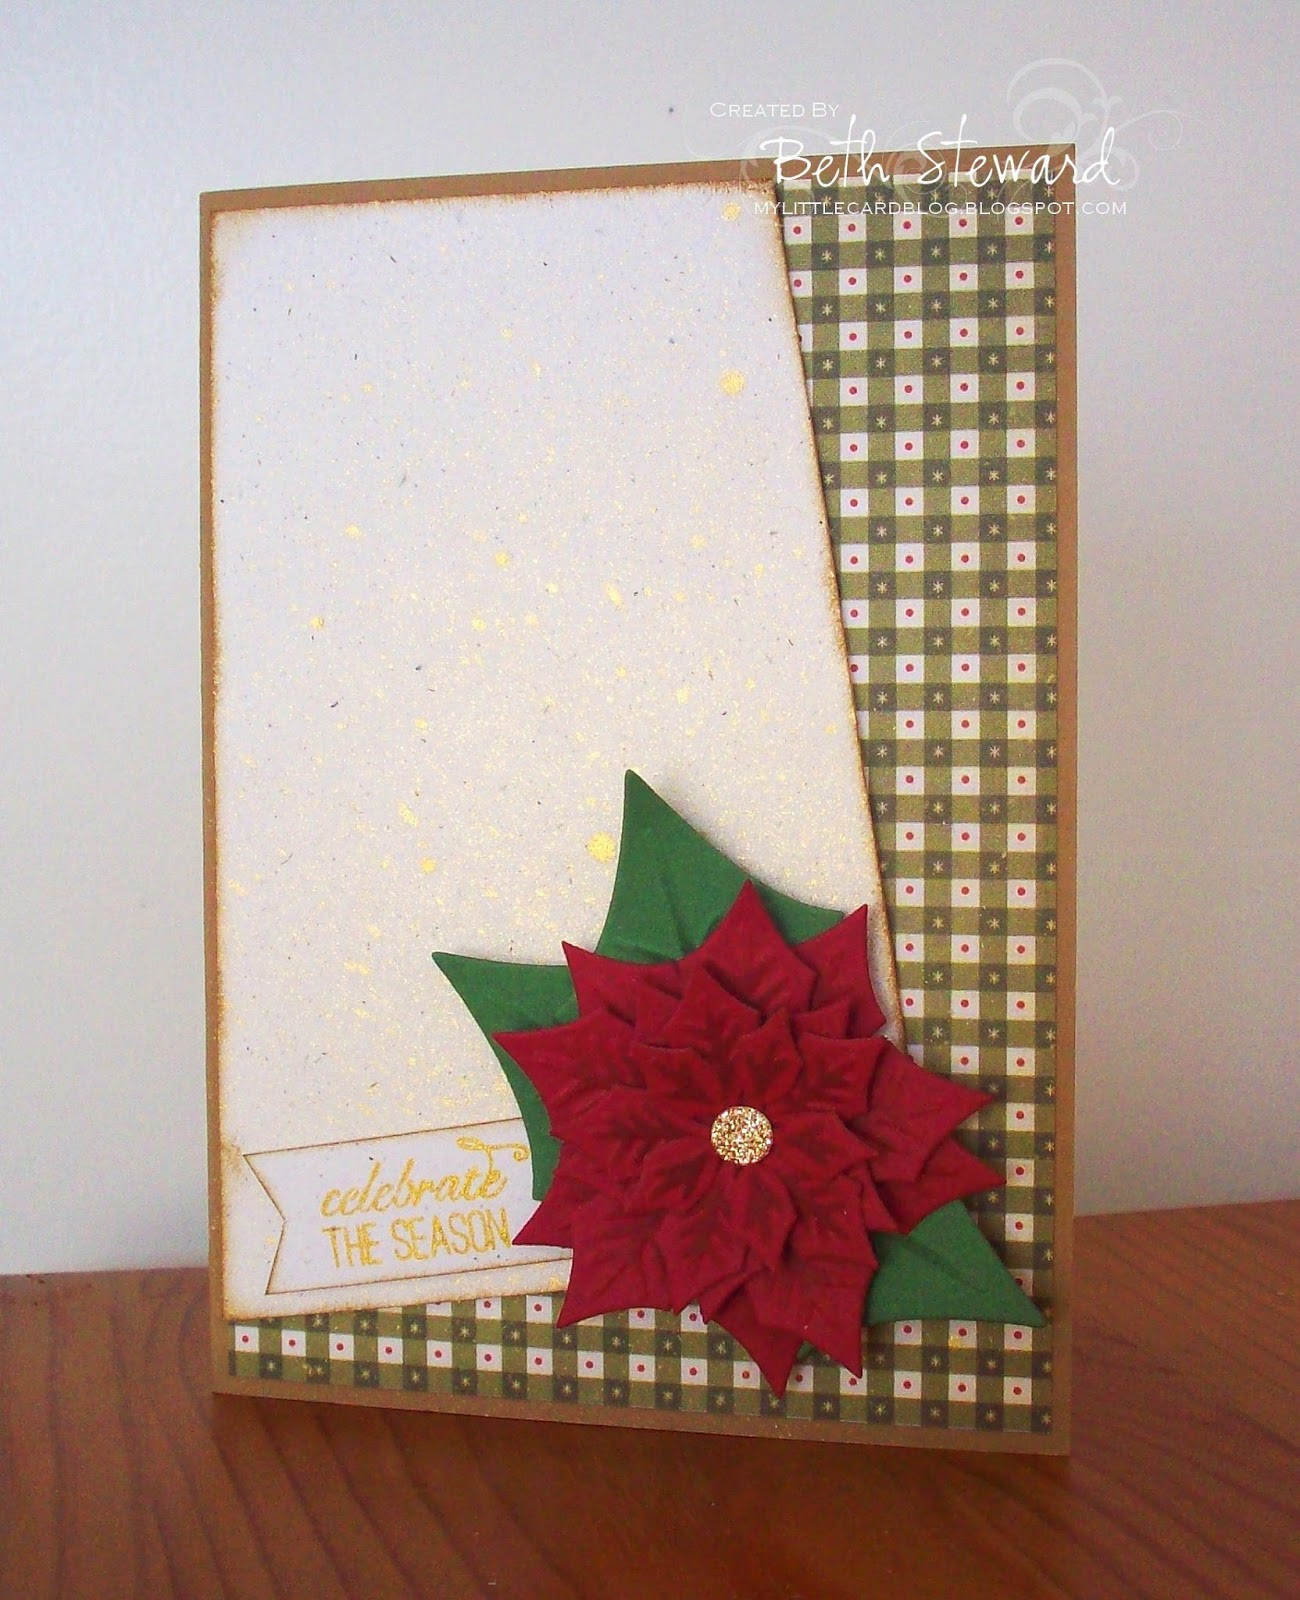 http://mylittlecardblog.blogspot.co.uk/2014/05/christmas-flowers.html